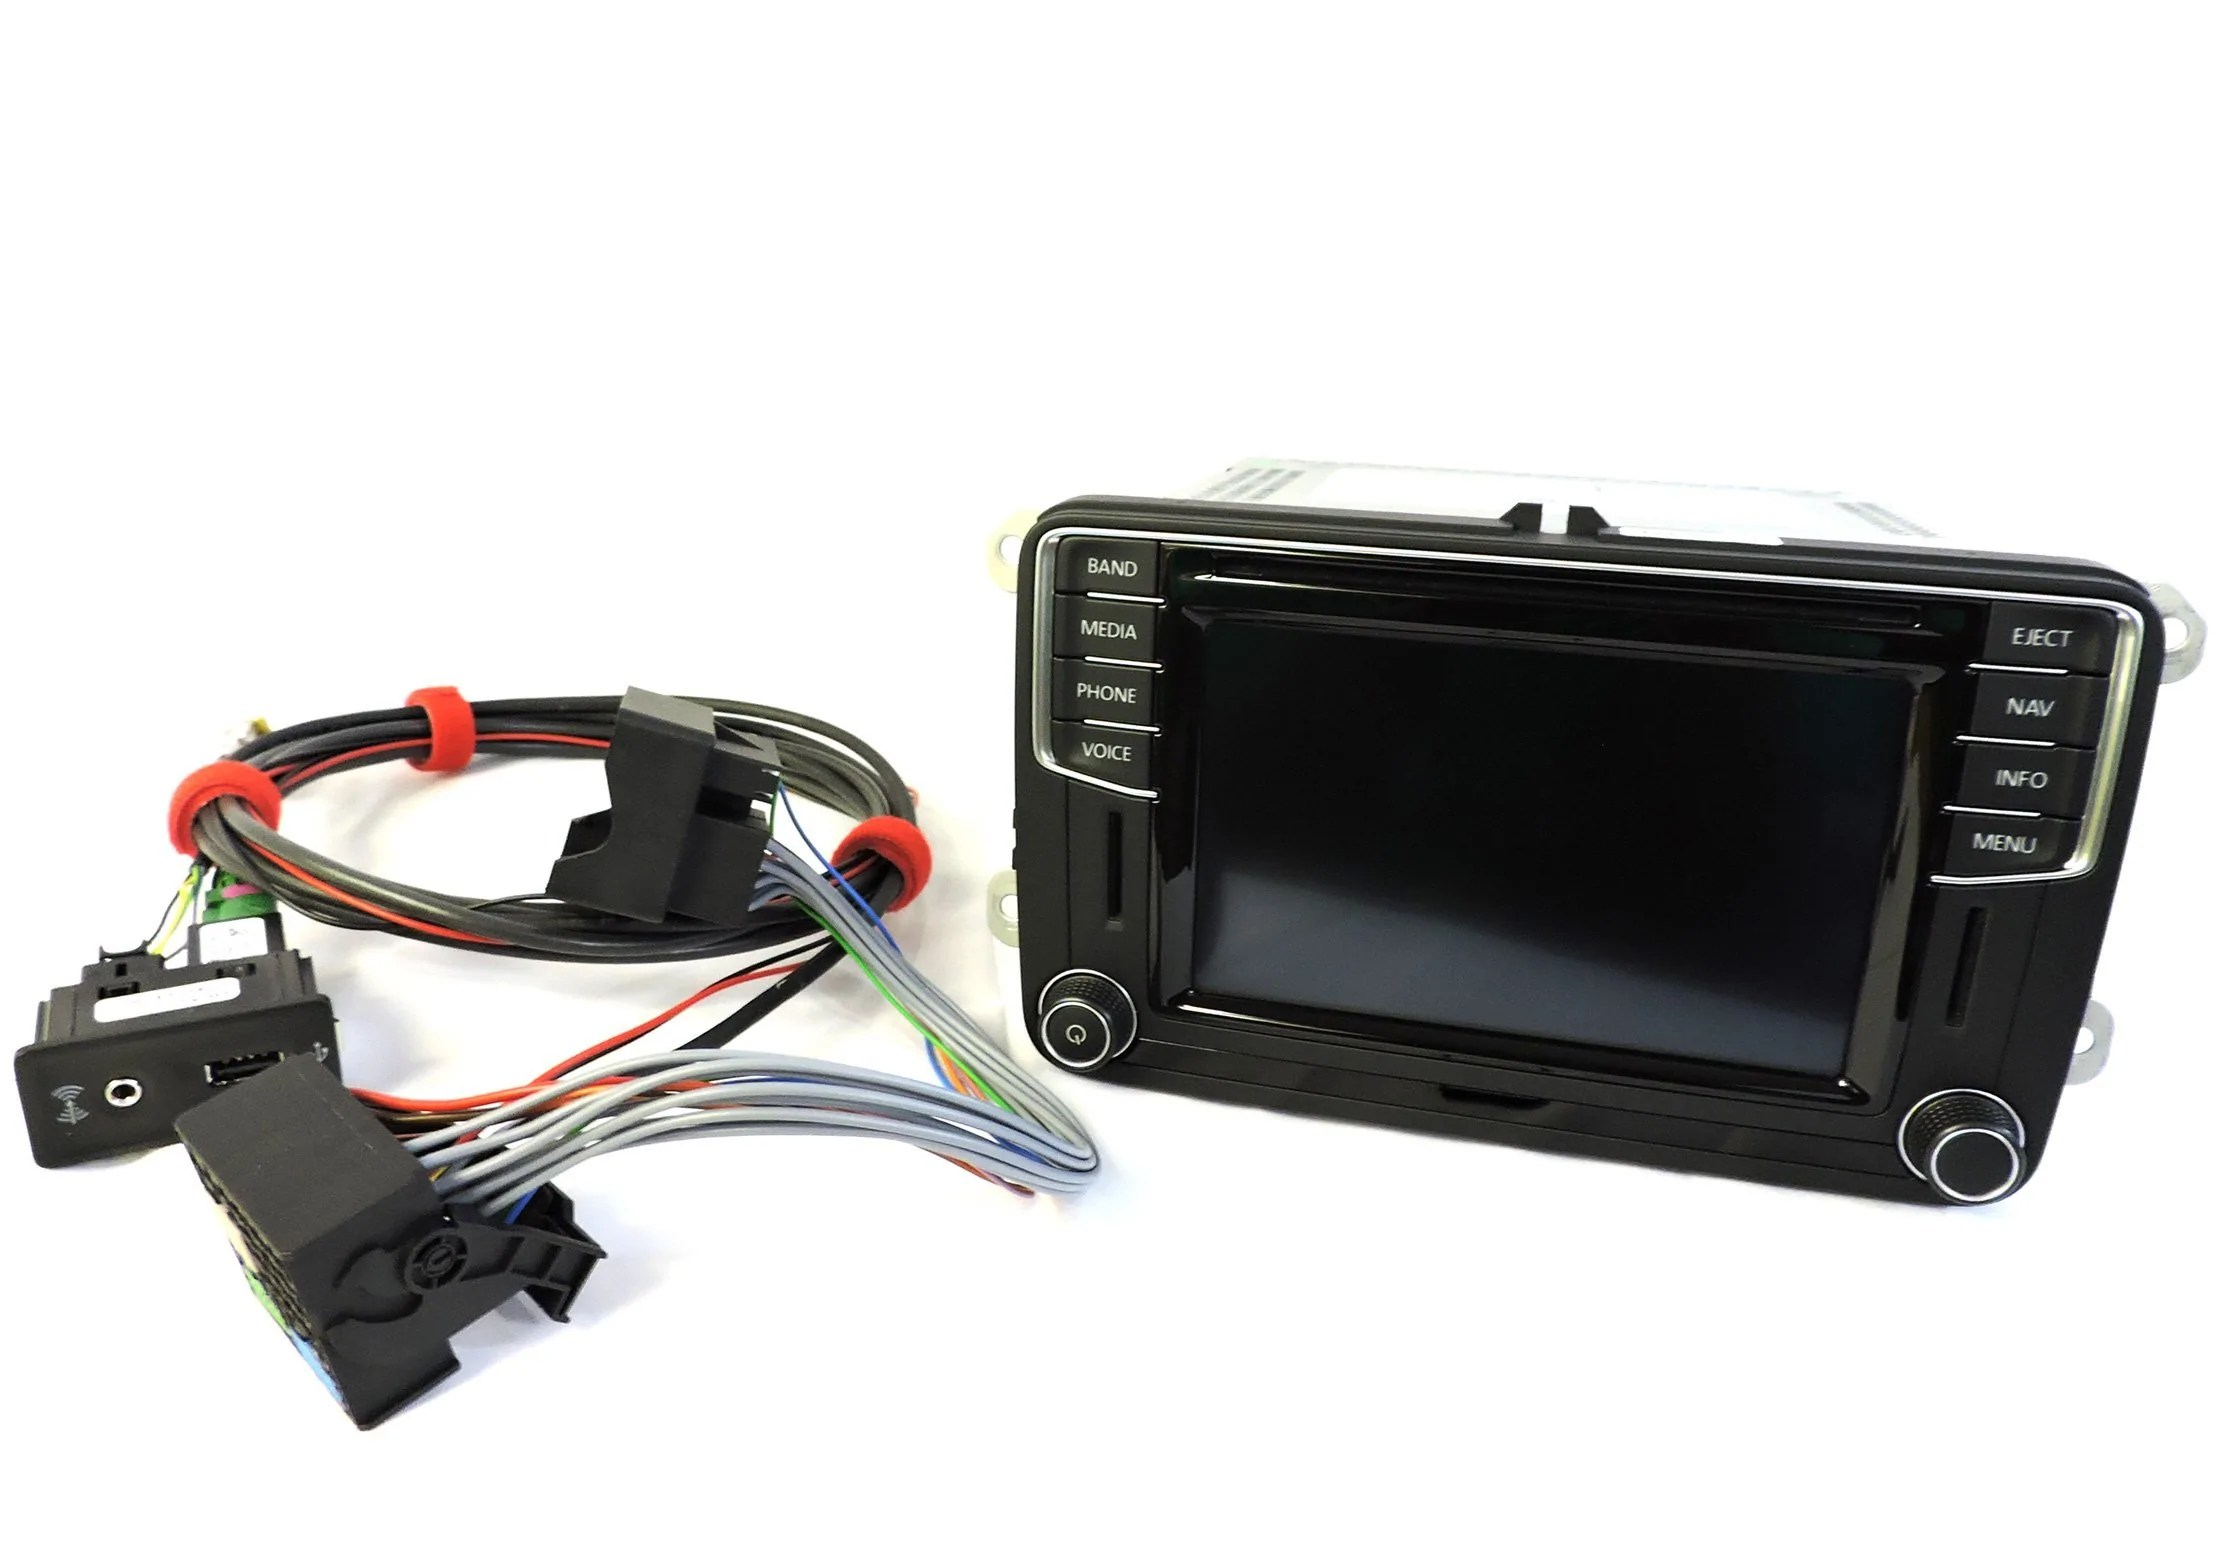 vw discover media plus mib2 pq retrofit kit w app connect eurozone tuning [ 2220 x 1565 Pixel ]